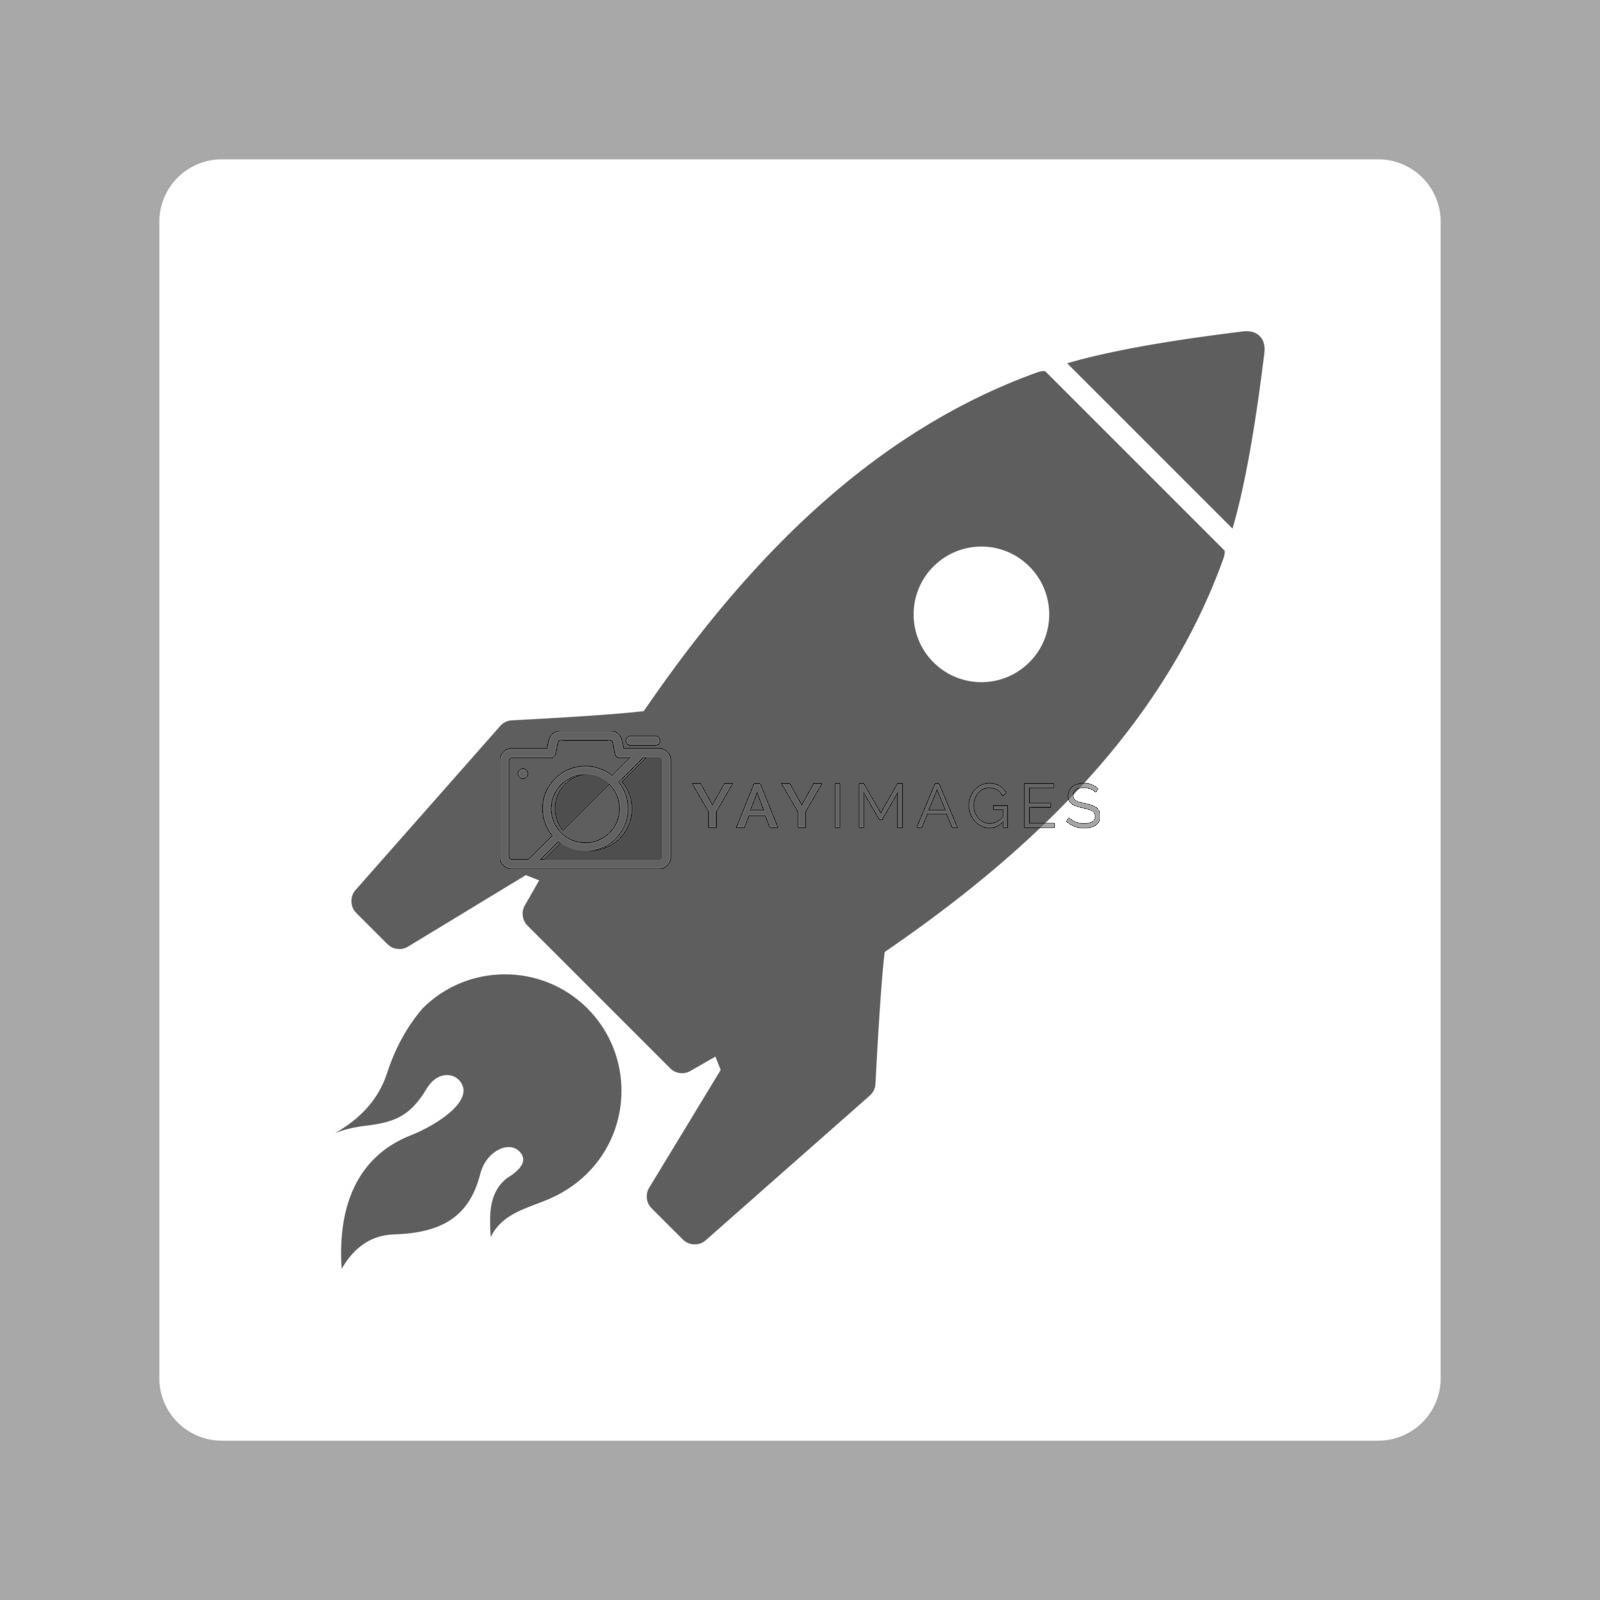 Rocket Launch icon from Commerce Buttons OverColor Set. Vector style is dark gray and white colors, flat square rounded button, silver background.